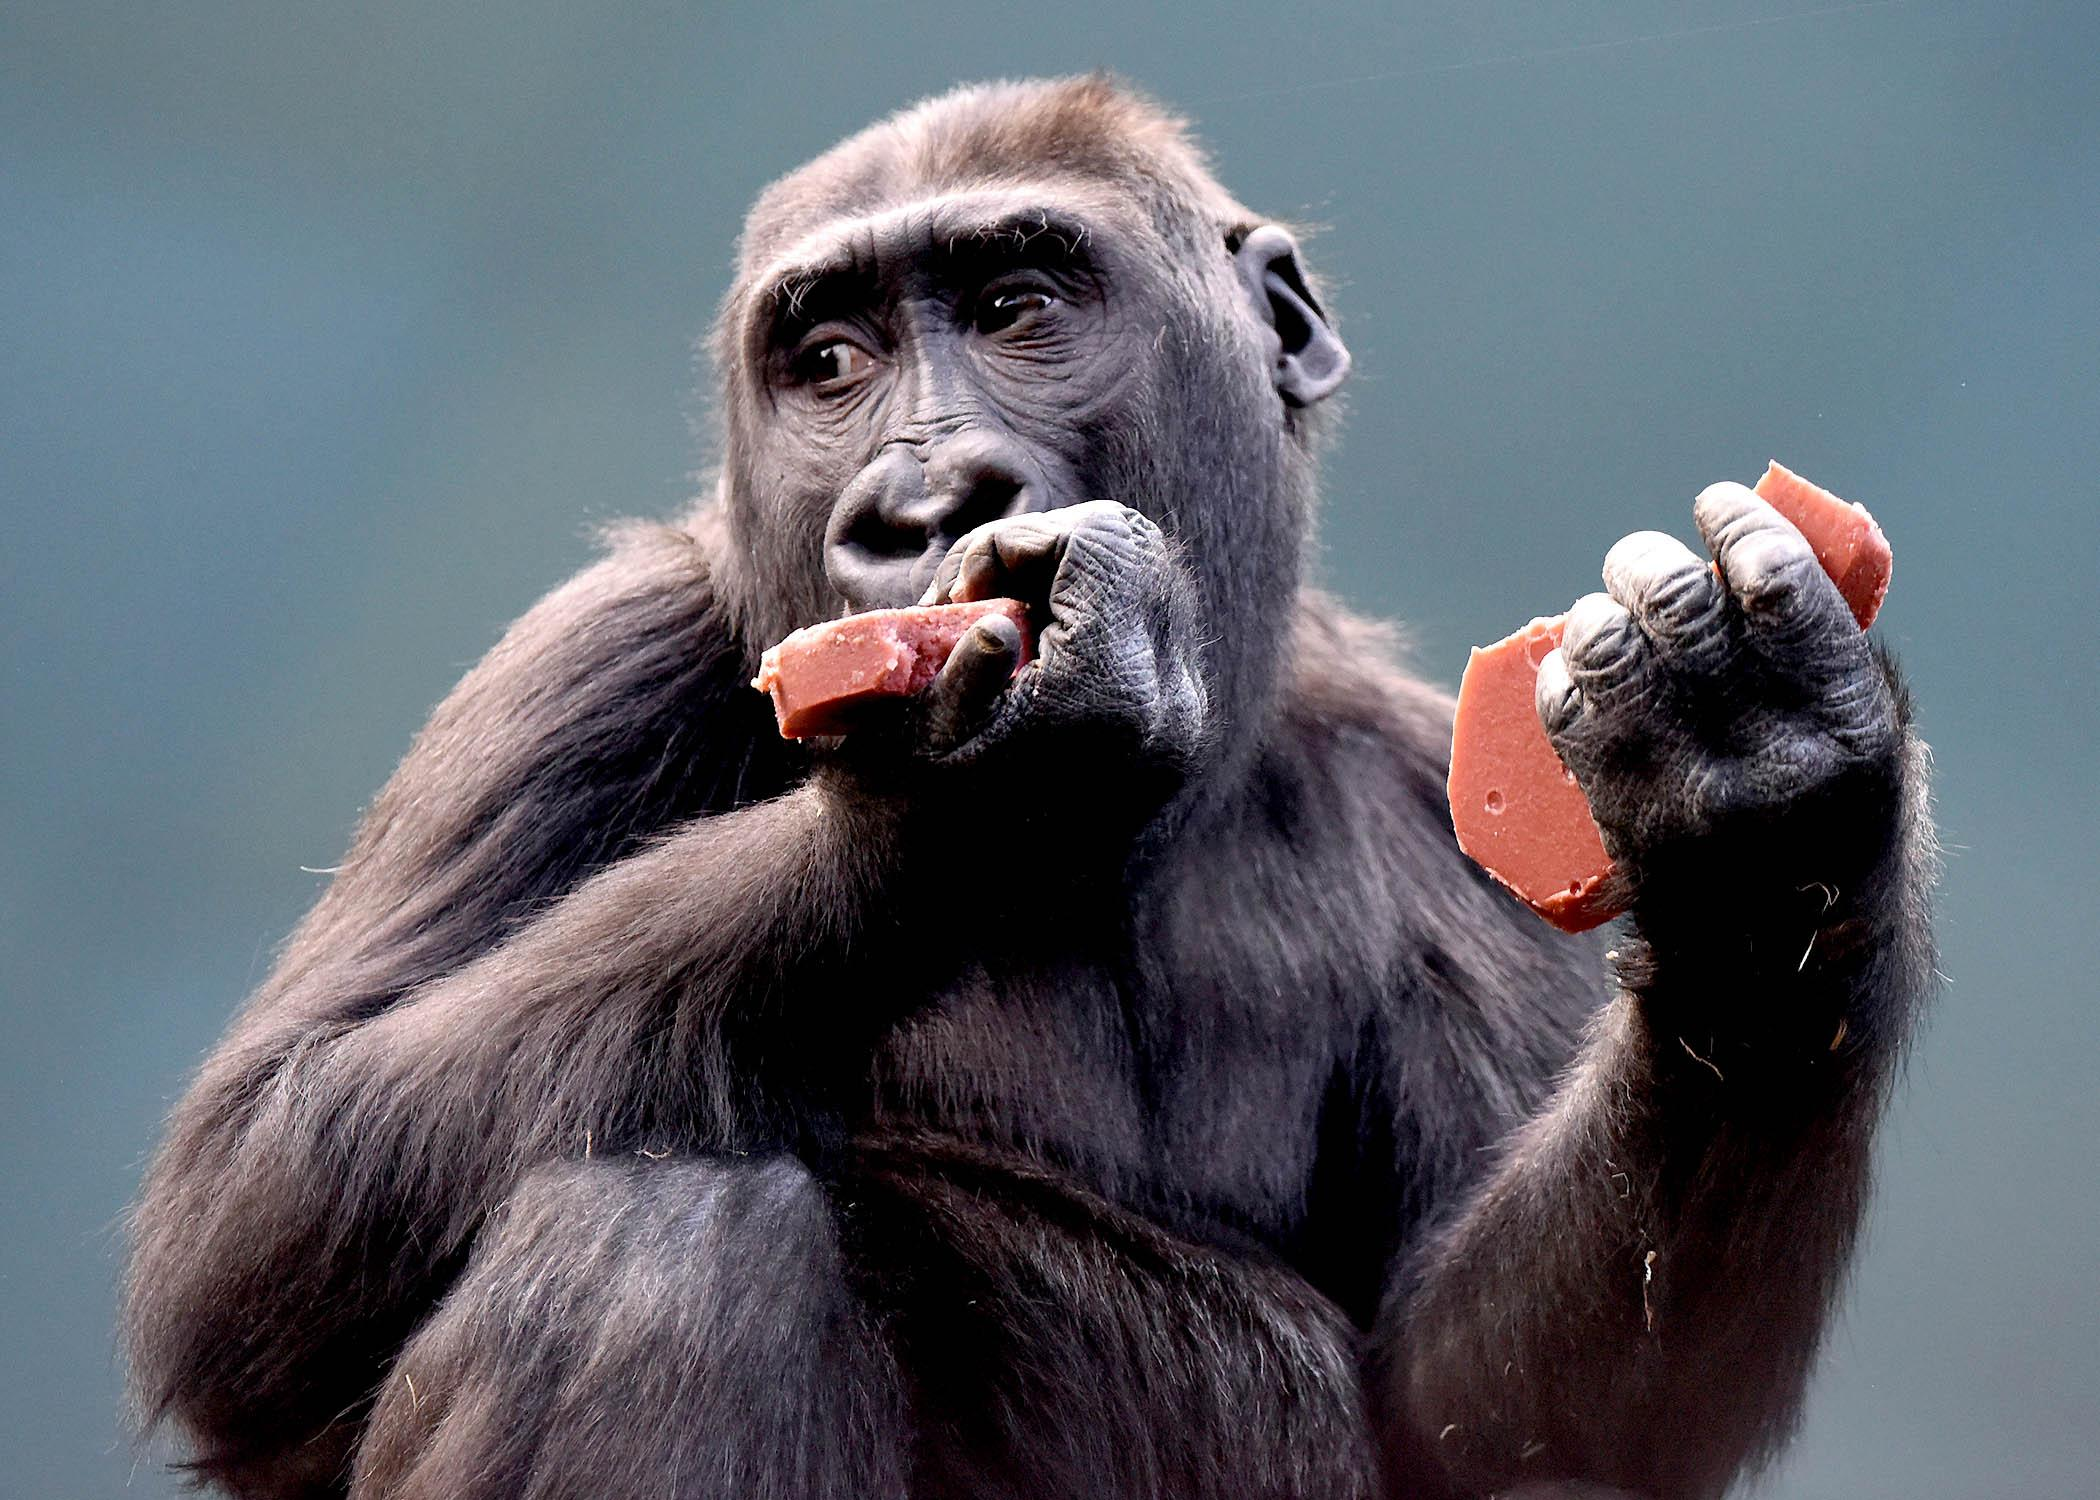 Nora, a 4-year-old western lowland gorilla, eats a heart-shaped treat made of biscuit and gelatin. (Jim Schulz / Chicago Zoological Society)